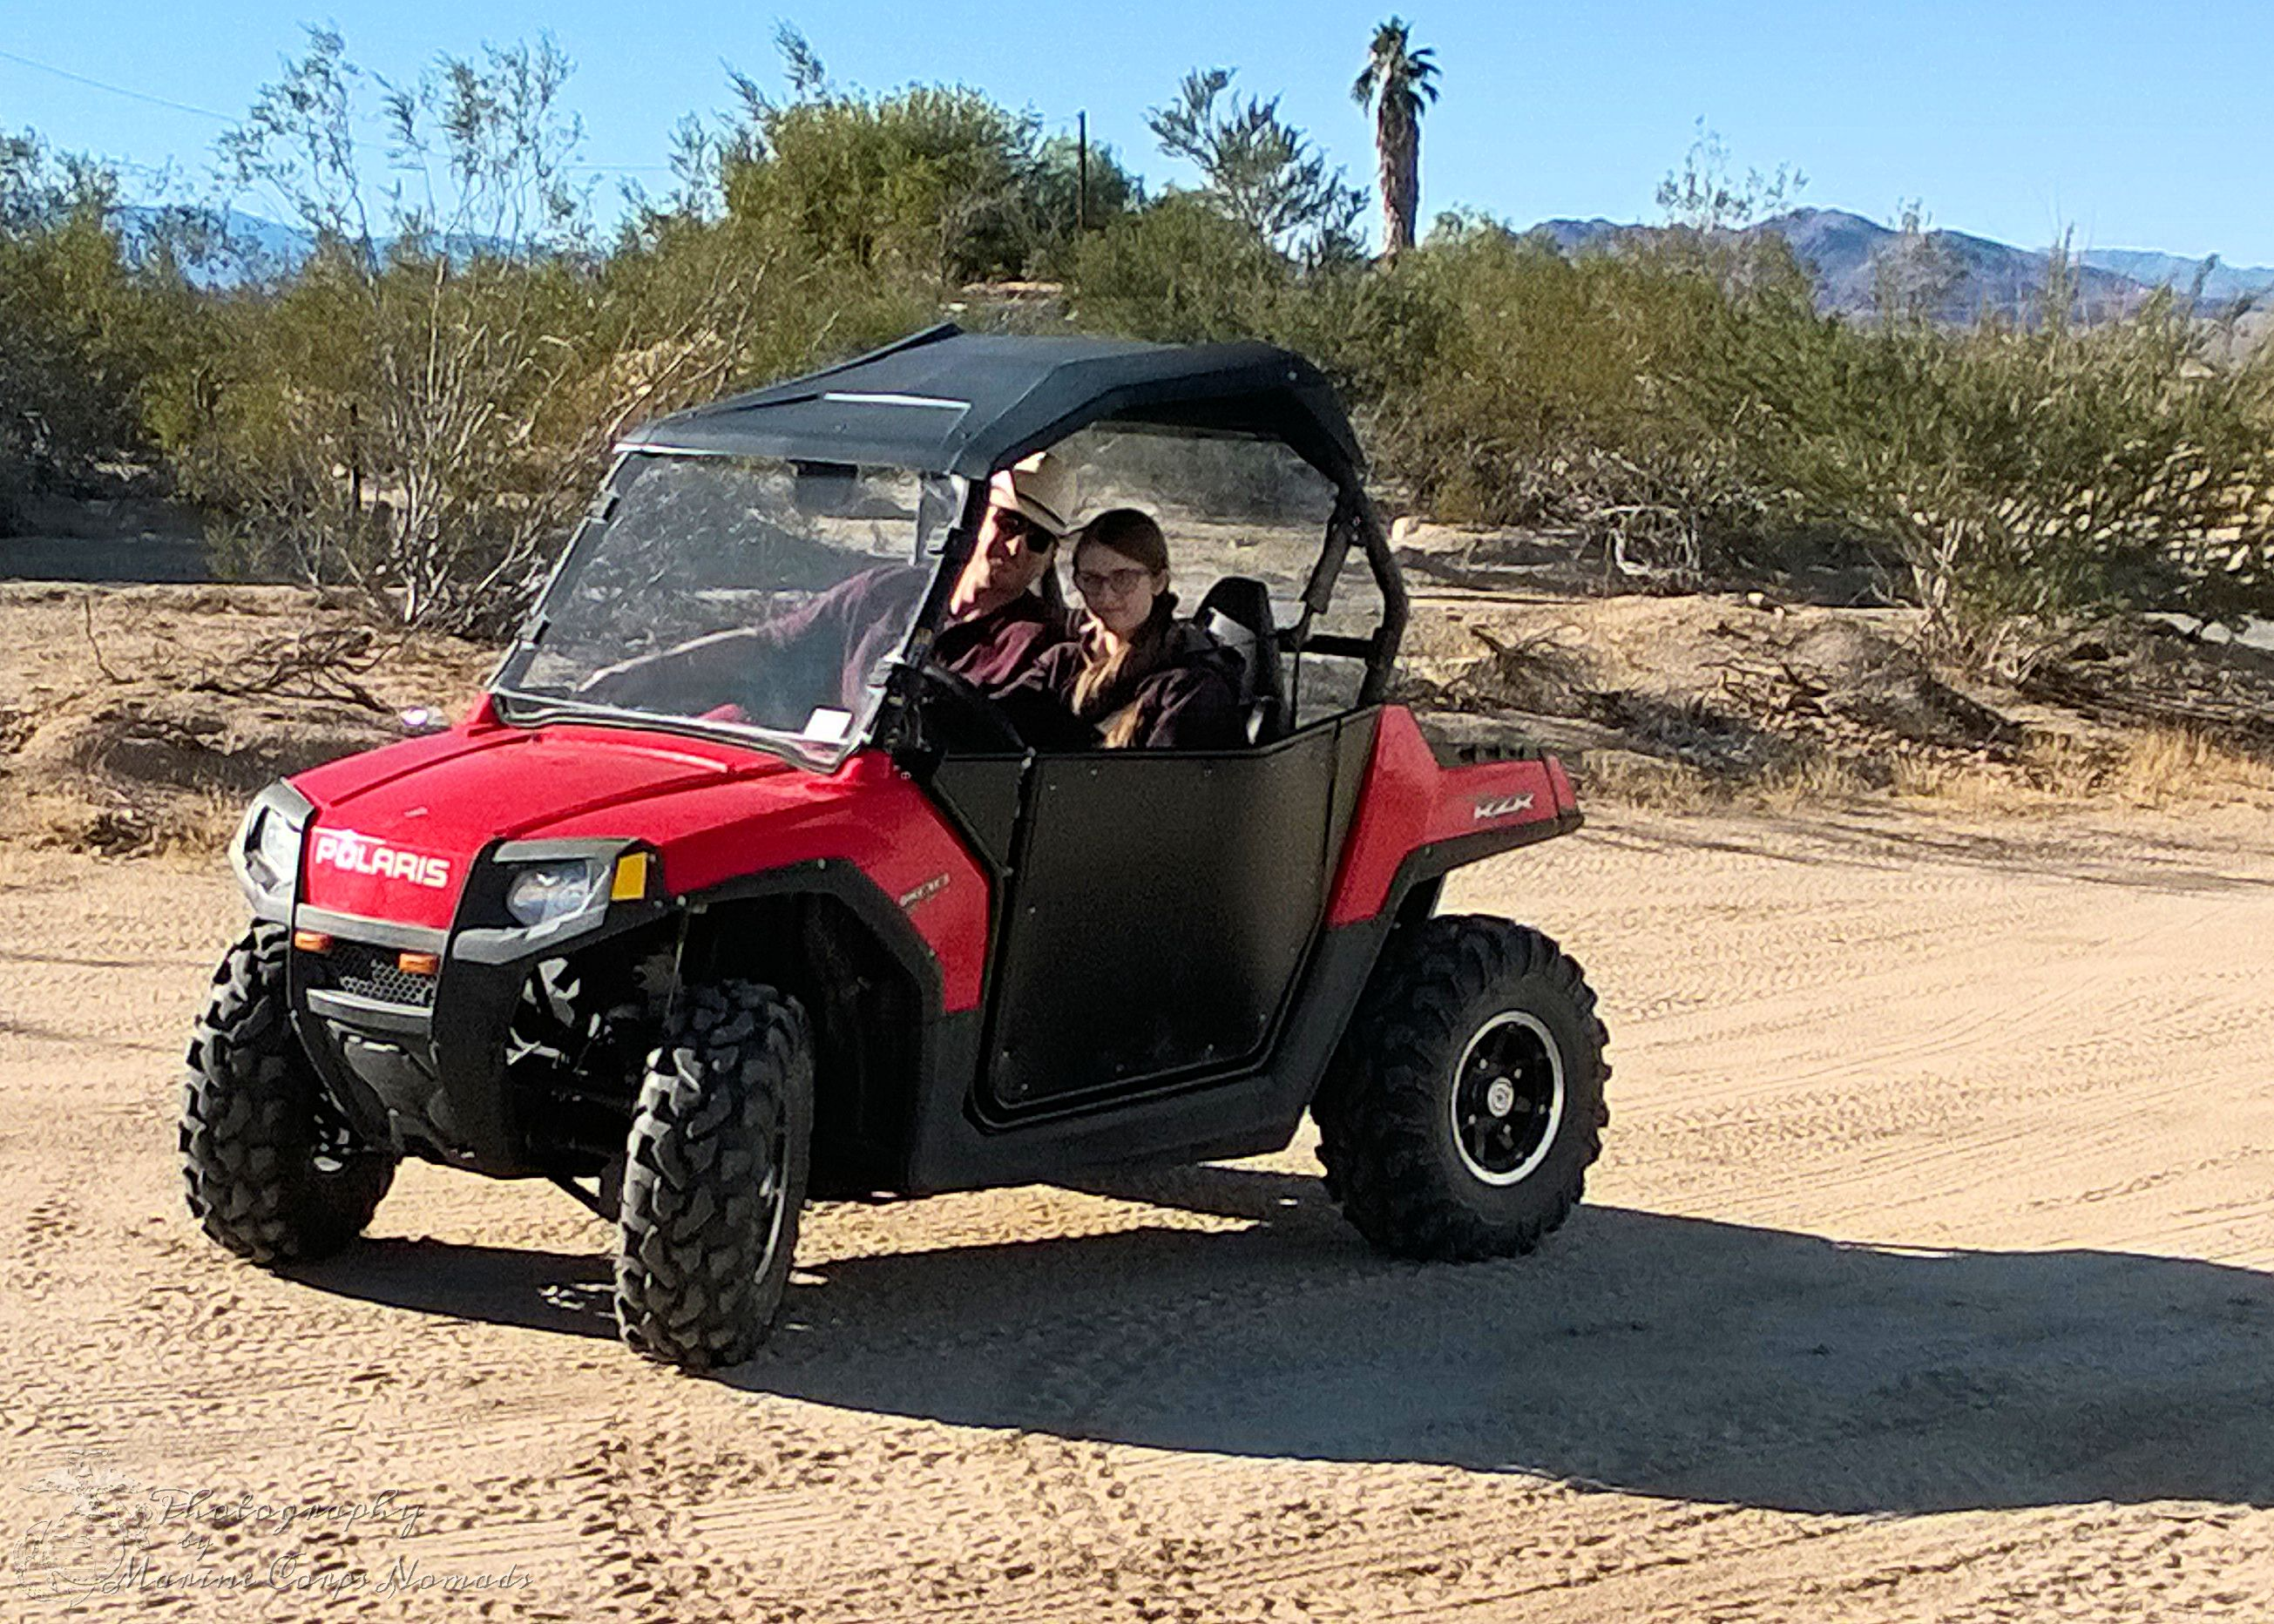 Testing out the new RZR Doors